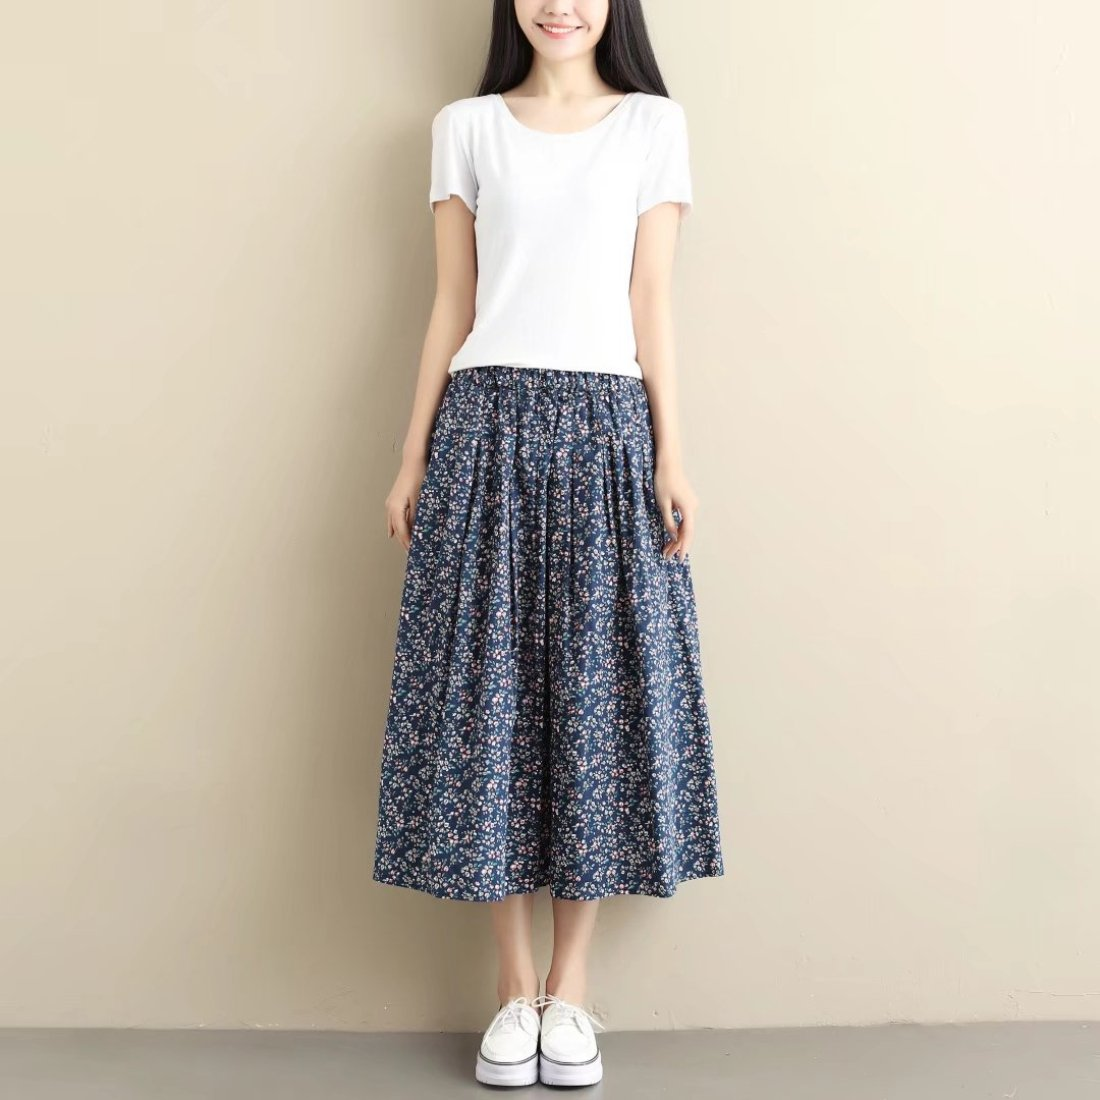 Aza Boutique Girls Fashion Cotton Loose Style Floral Ankle Length Skirt